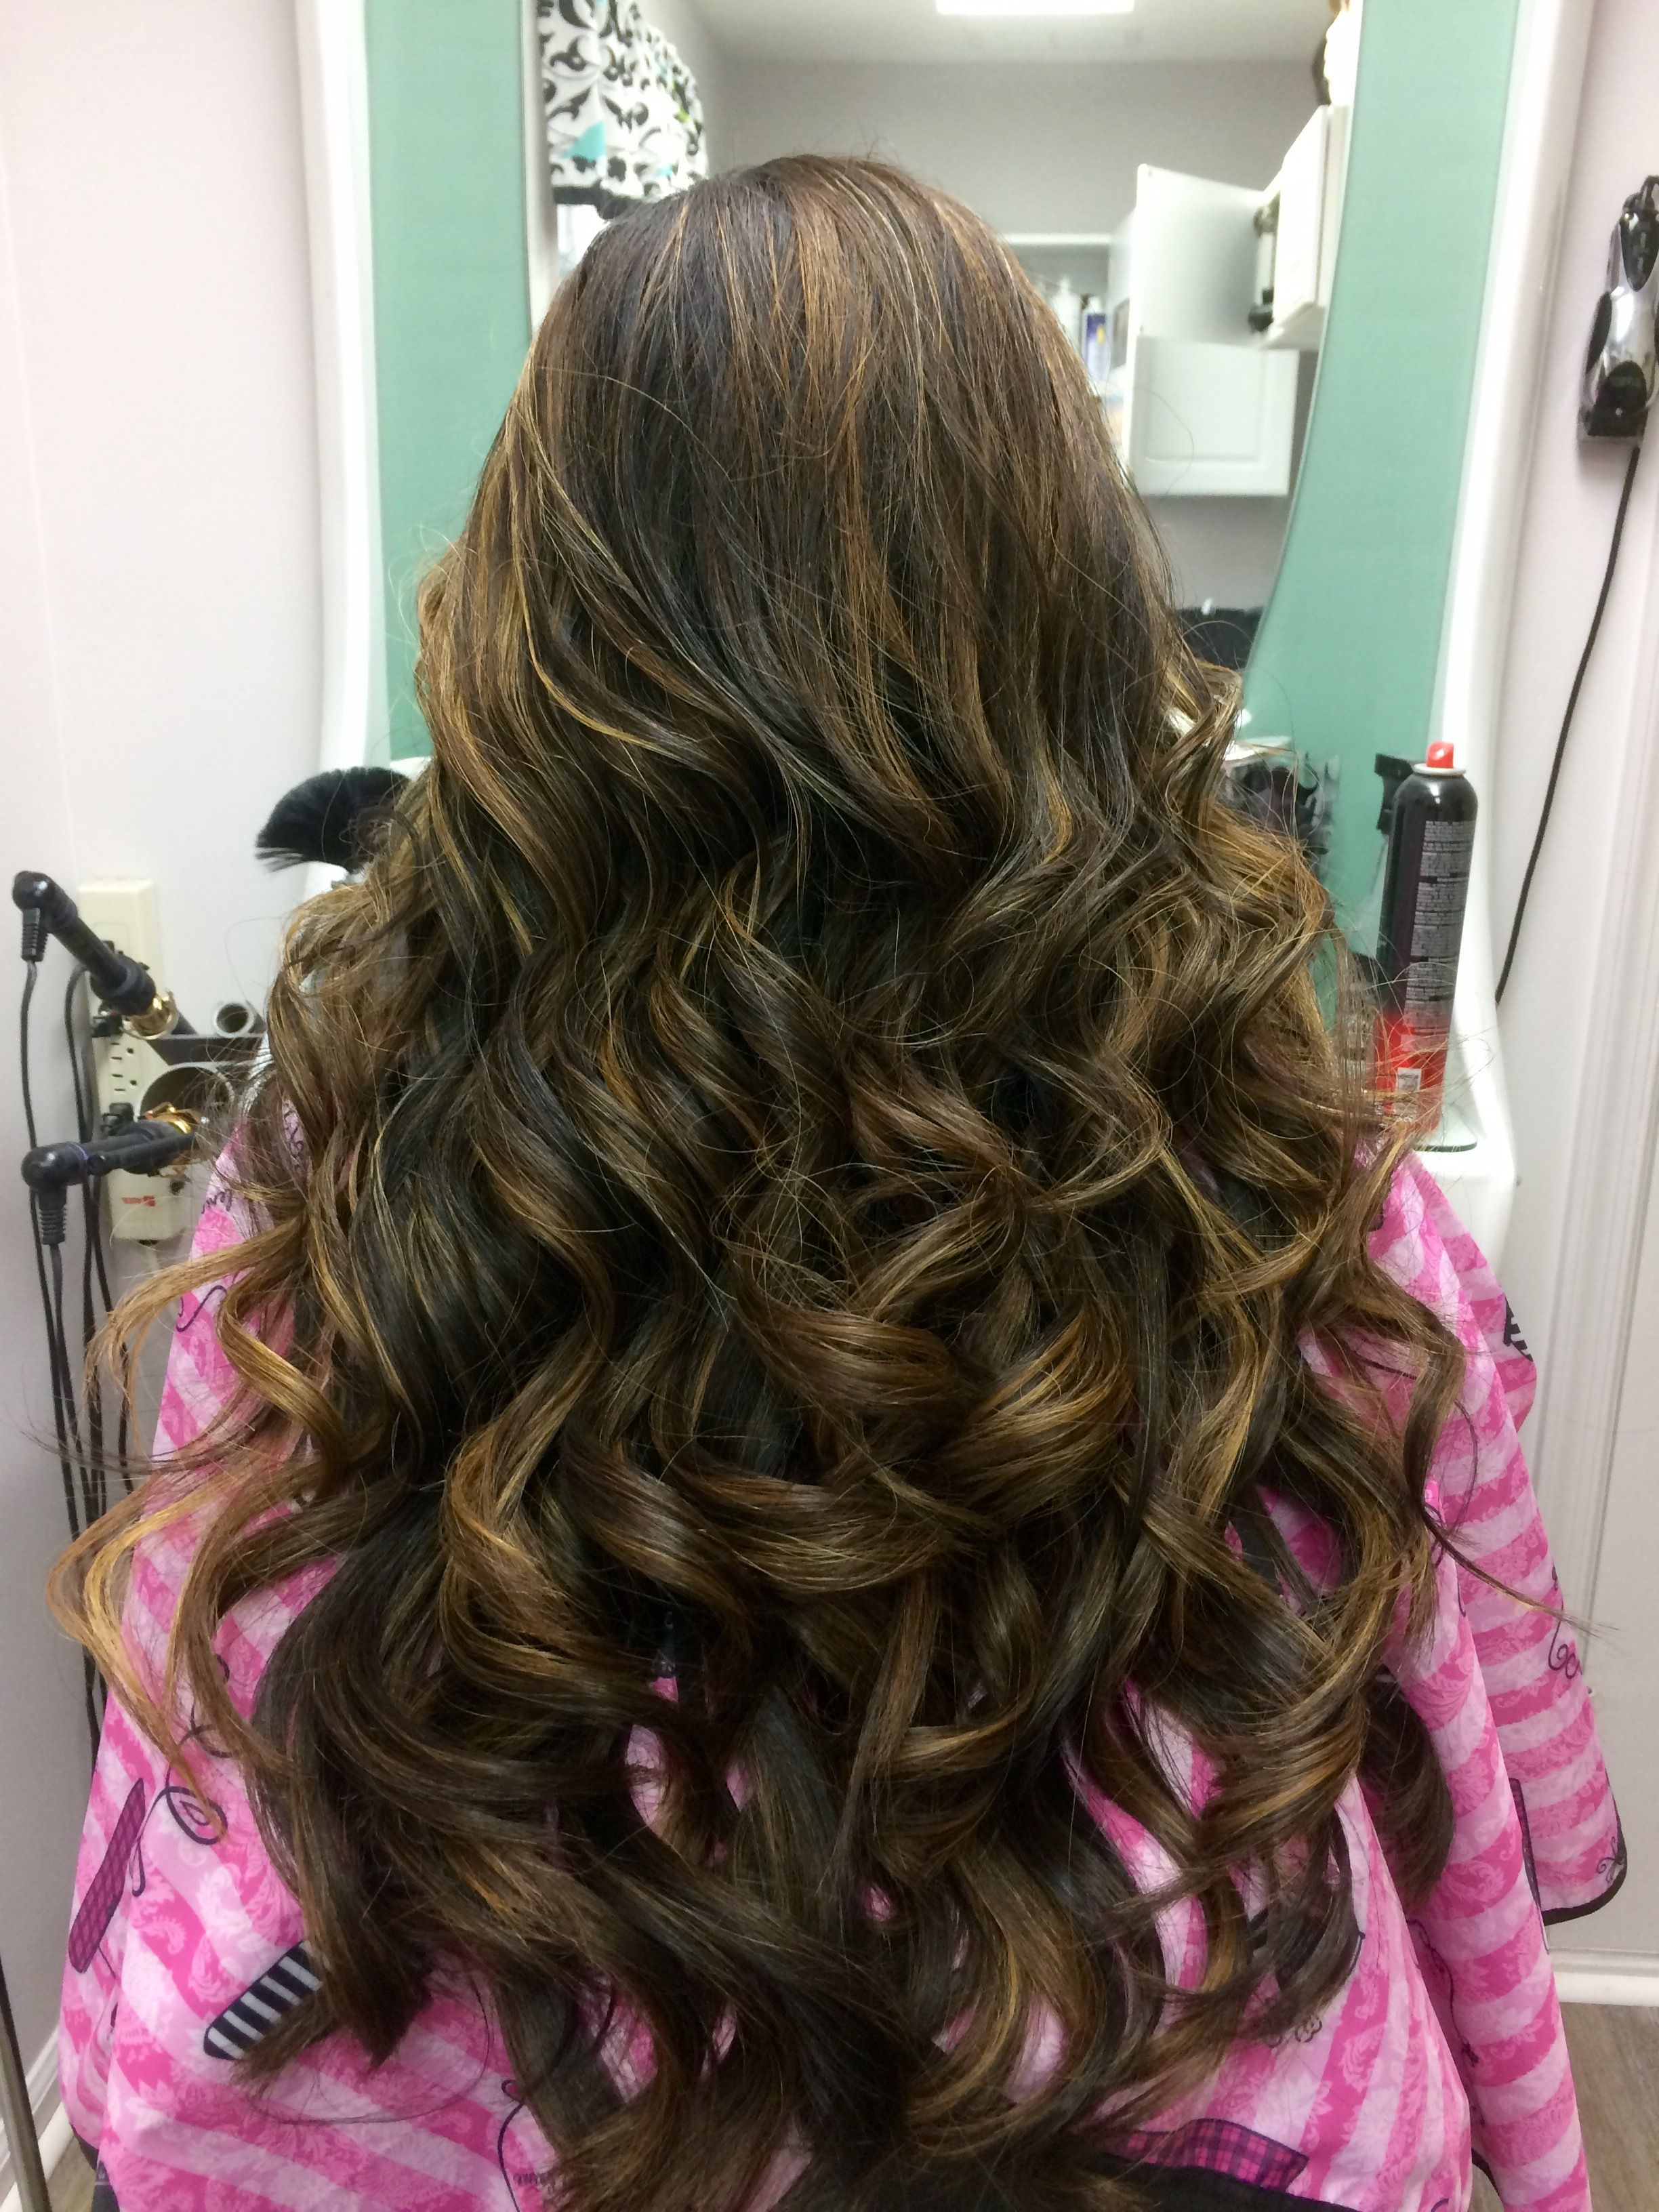 Hairstyle For Long Hair Curled With 1inch Curling Iron My Hair